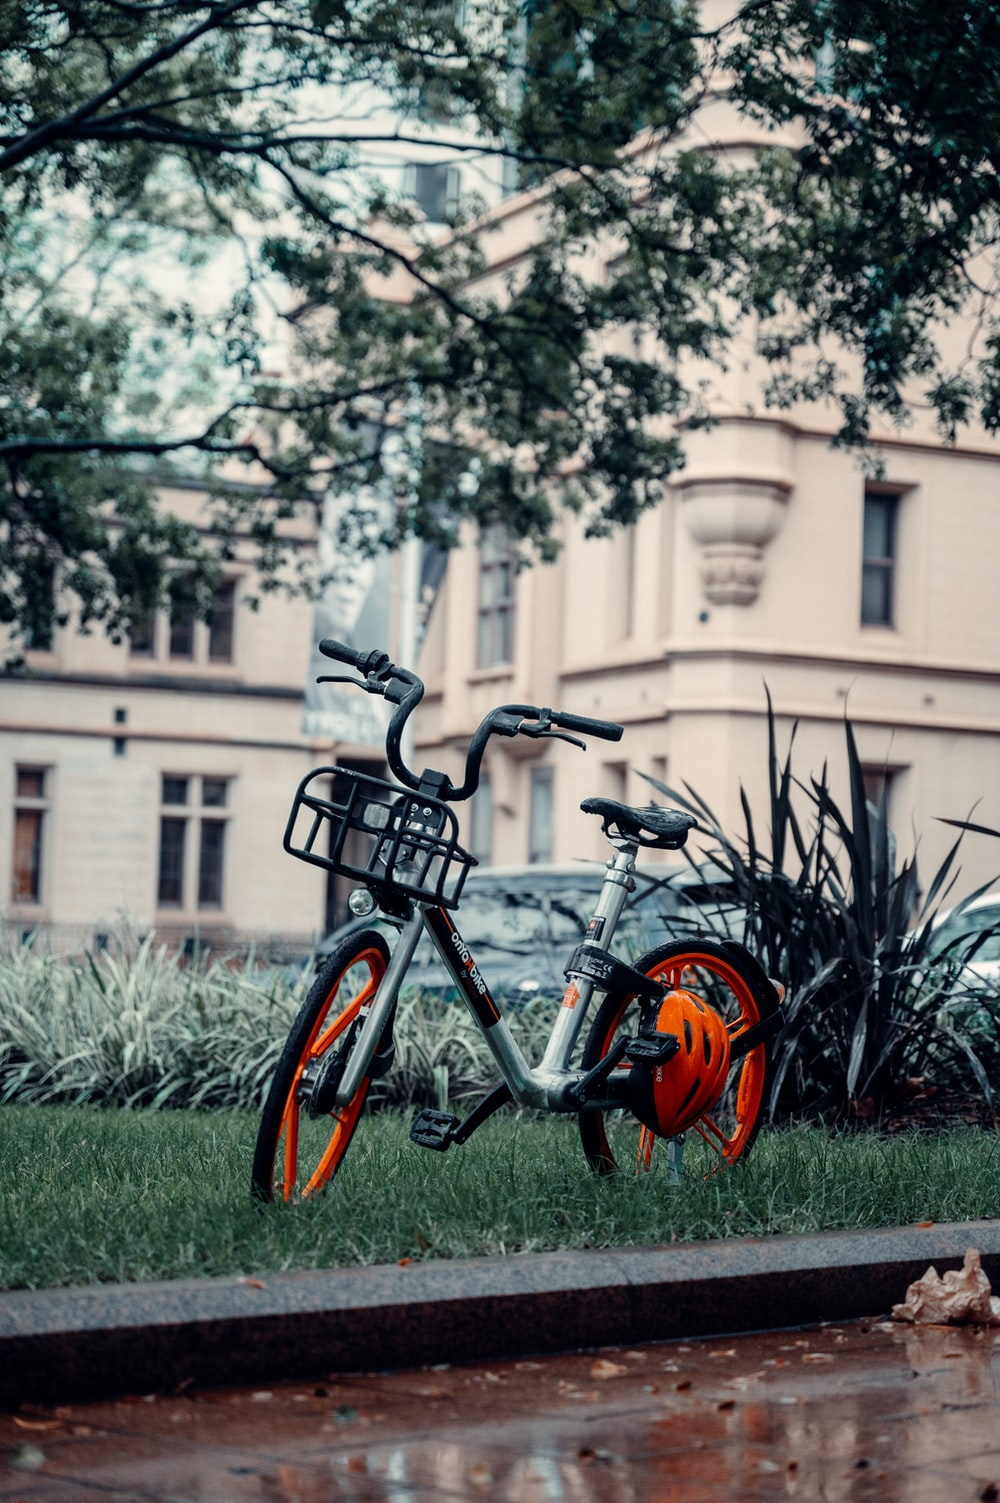 black and orange bicycle on green grass field during daytime